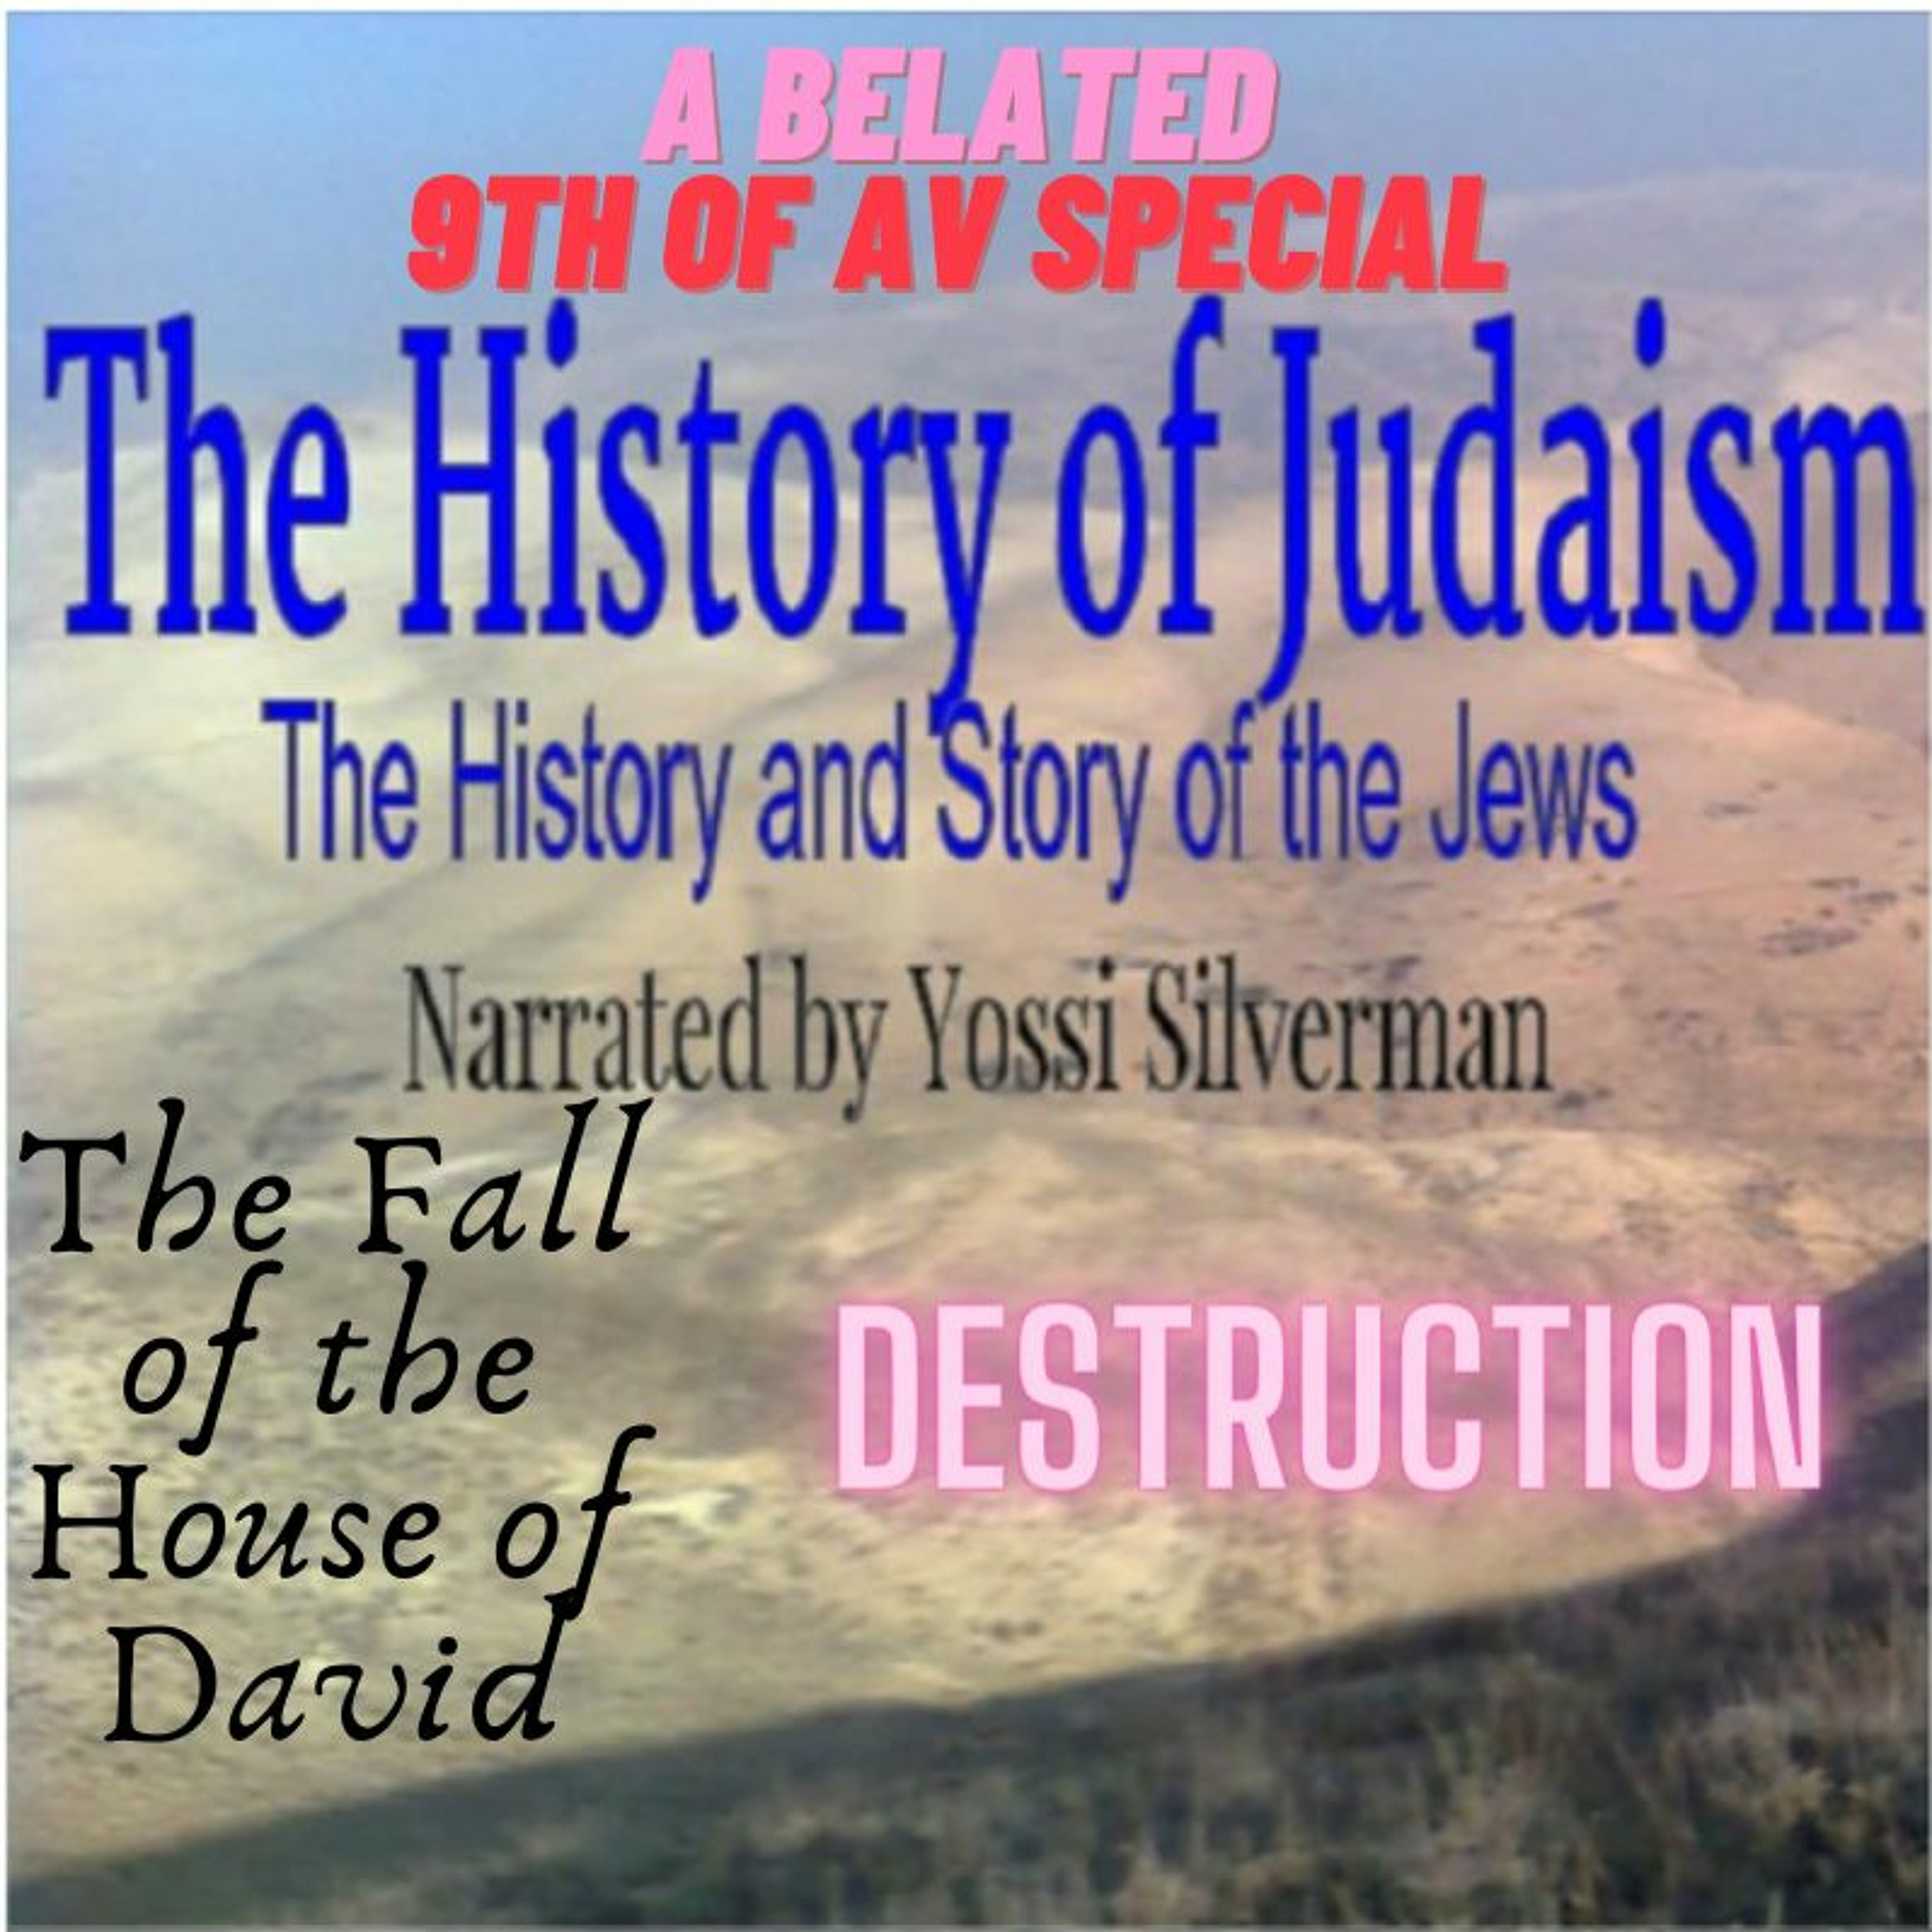 14. The Fall of the House of David : Destruction (A Belated 9th of Av Special)